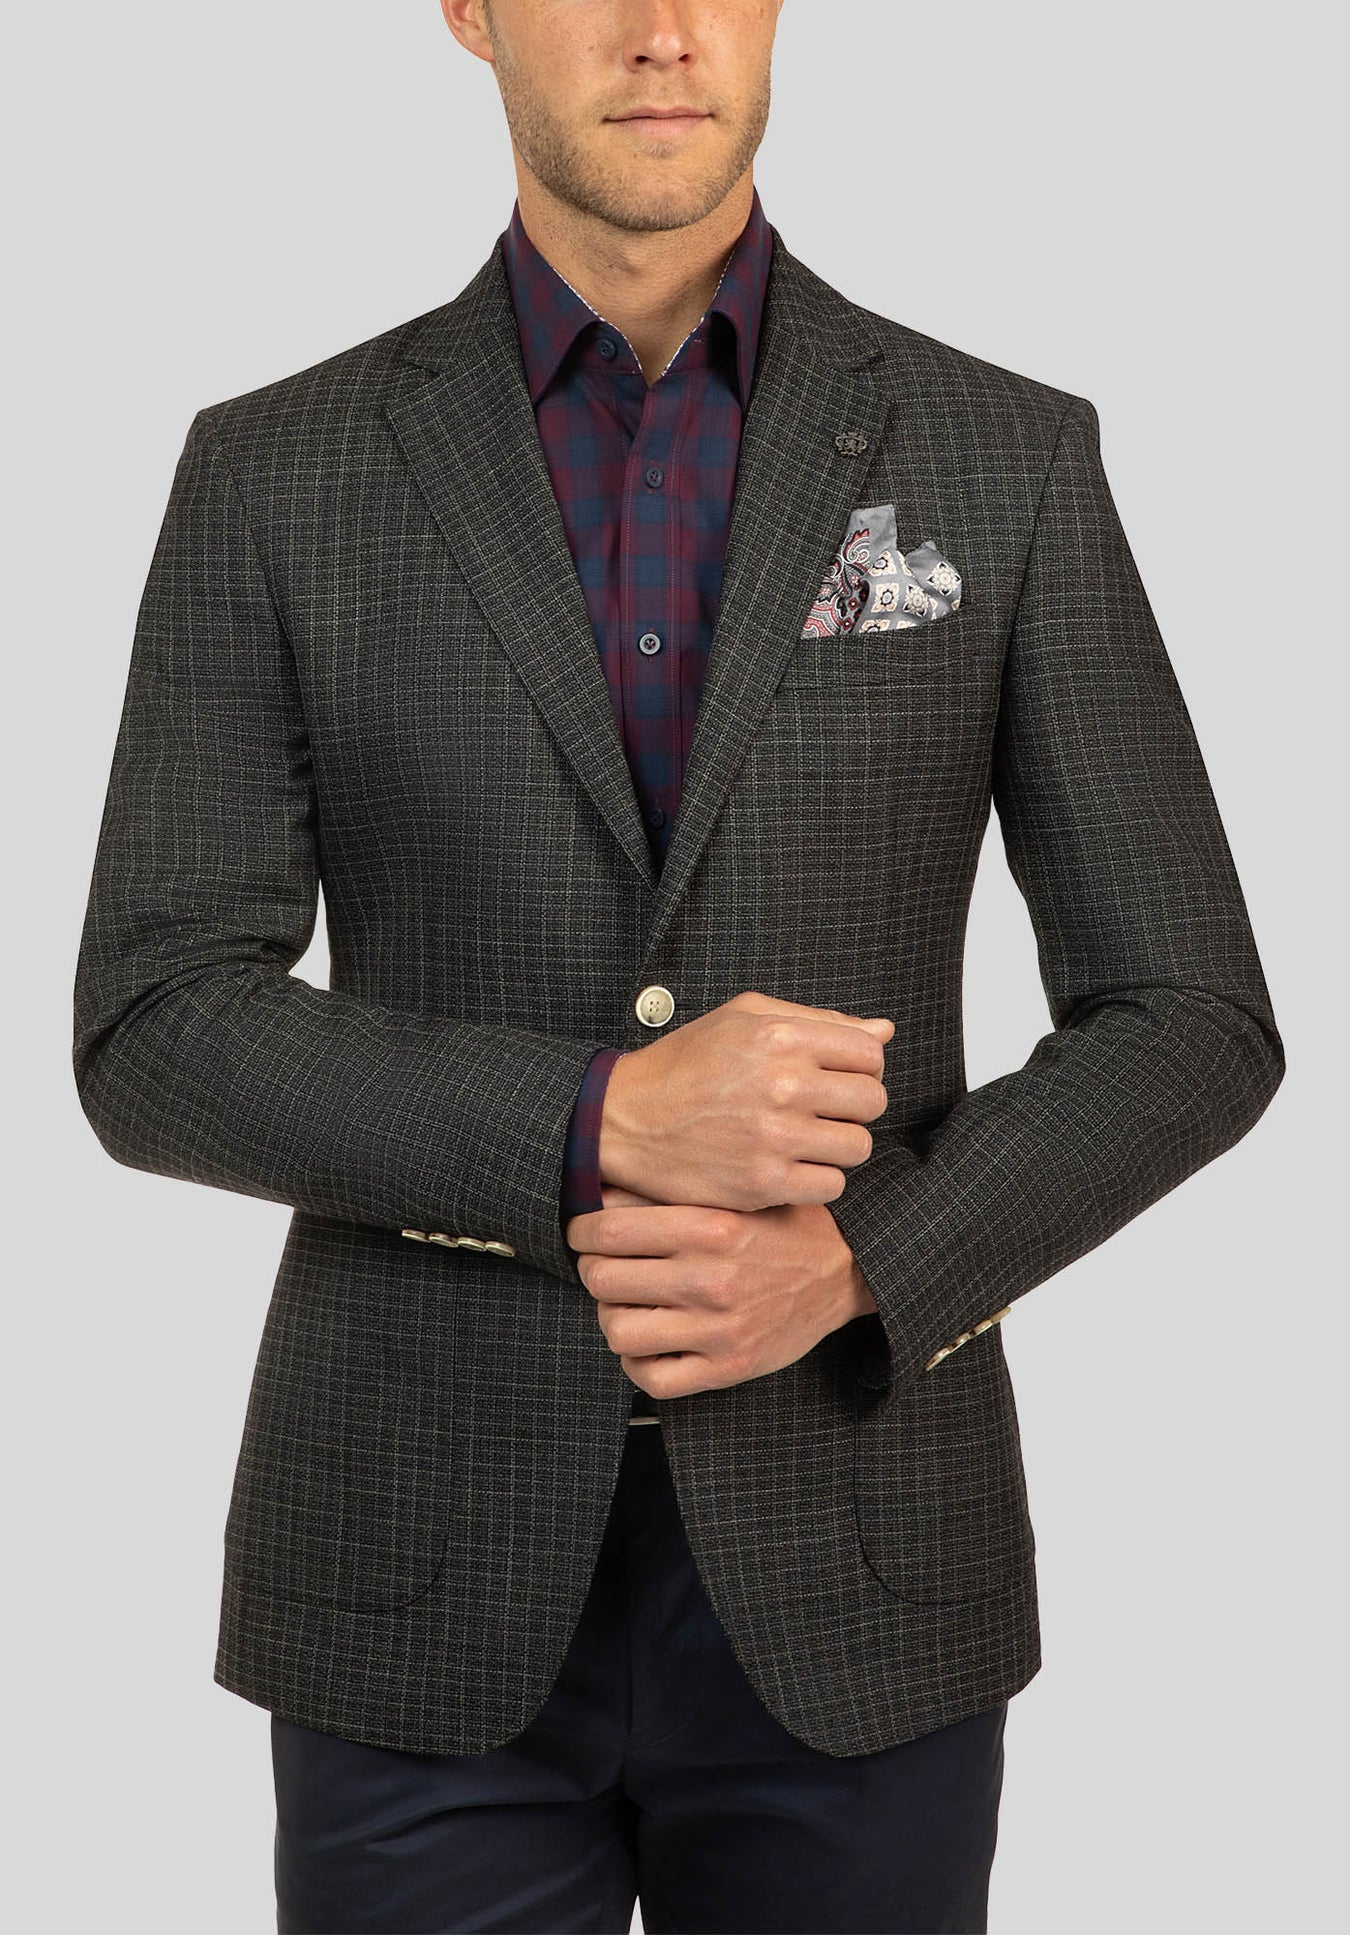 BEAUMARIS JACKET FCJ328 - Charcoal